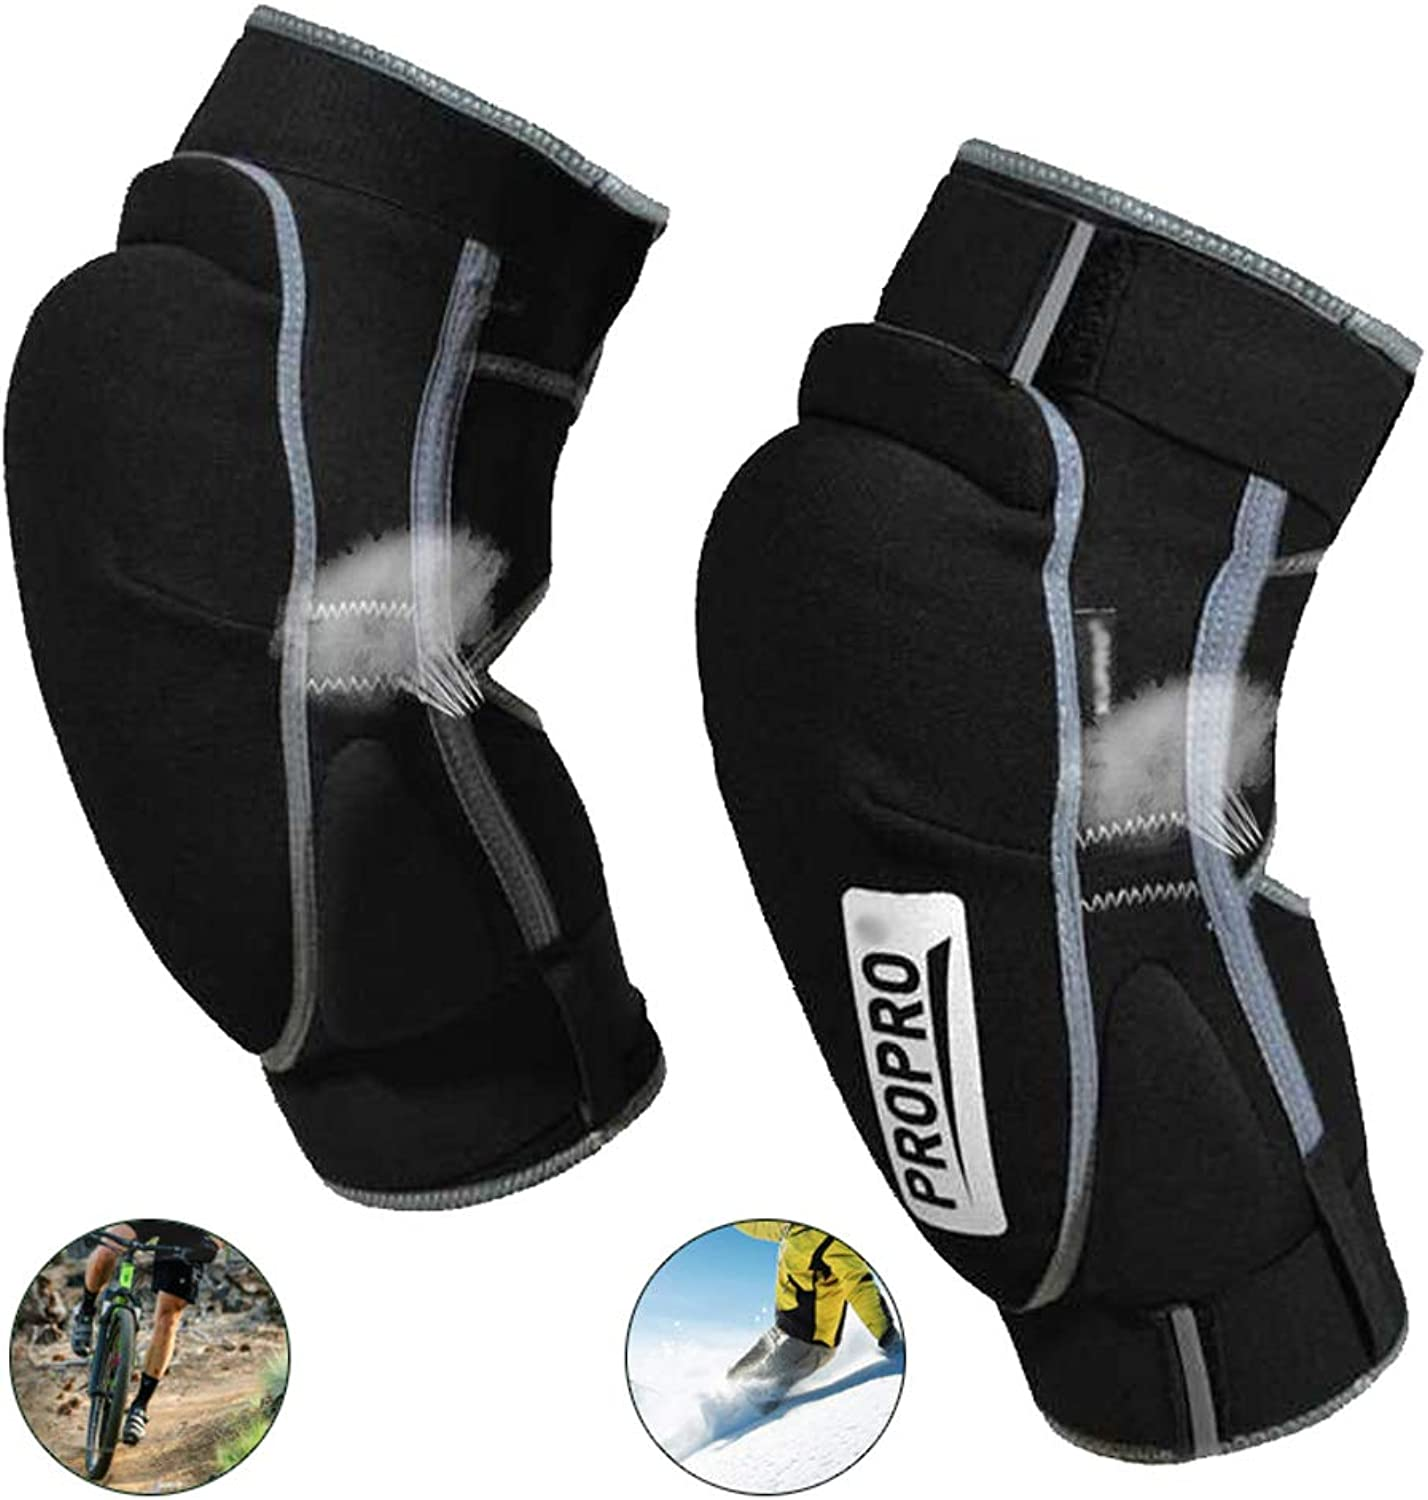 Kneepads Sports Riding Predective Gear Skiing and Outdoor Moto Ski Keep Warm Knee Pads 1 Pair,L